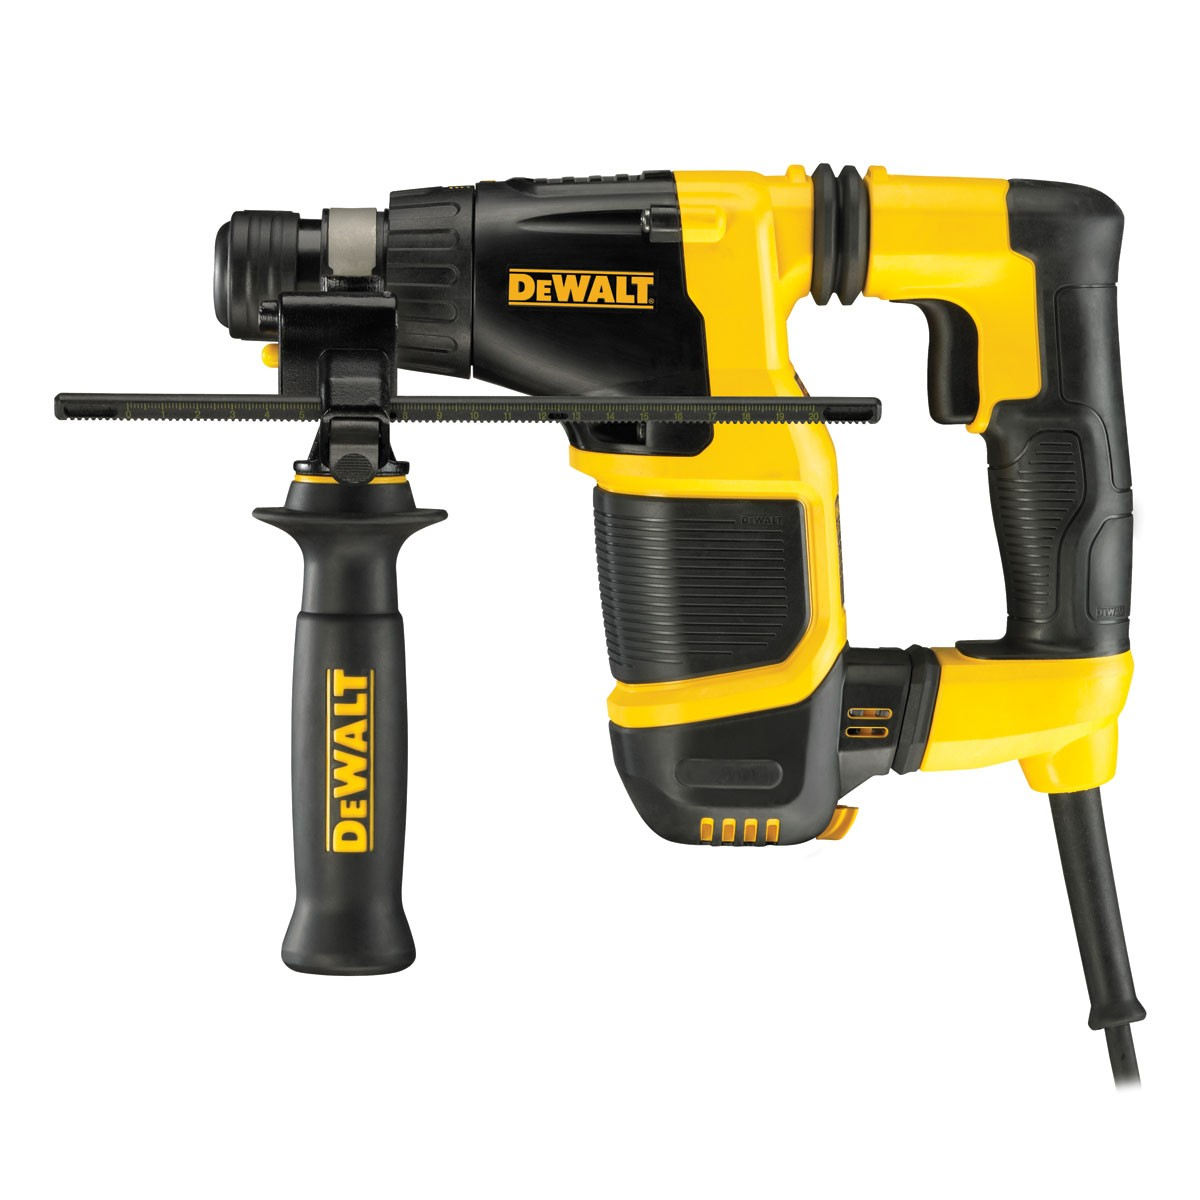 Dewalt Dust Extractor >> DeWalt D25052KT SDS+ Plus Compact Rotary Hammer Drill 20mm | Powertool World